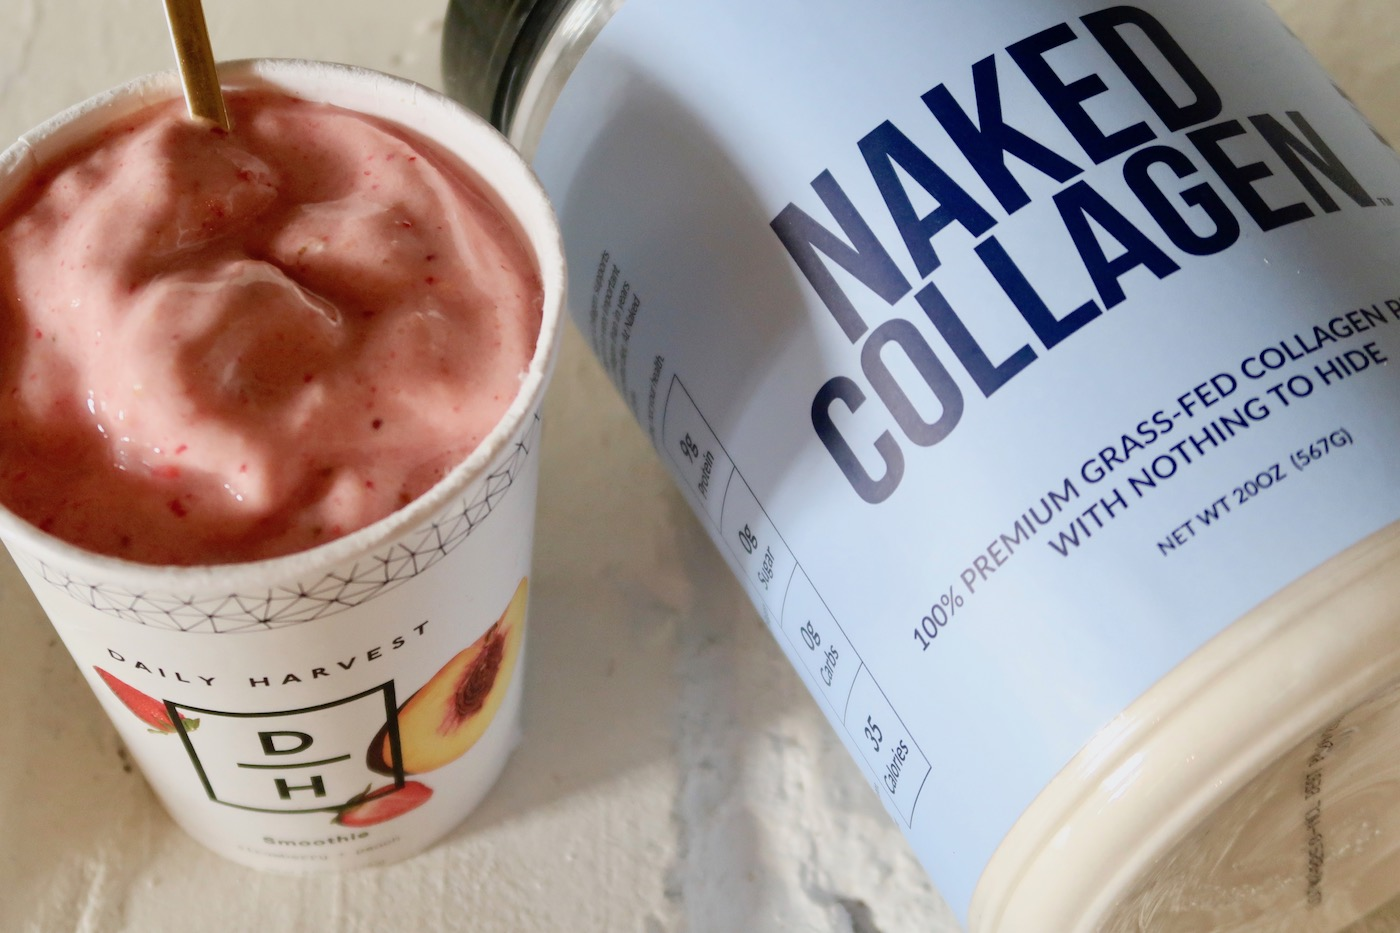 A review of Naked Nutrition Collagen